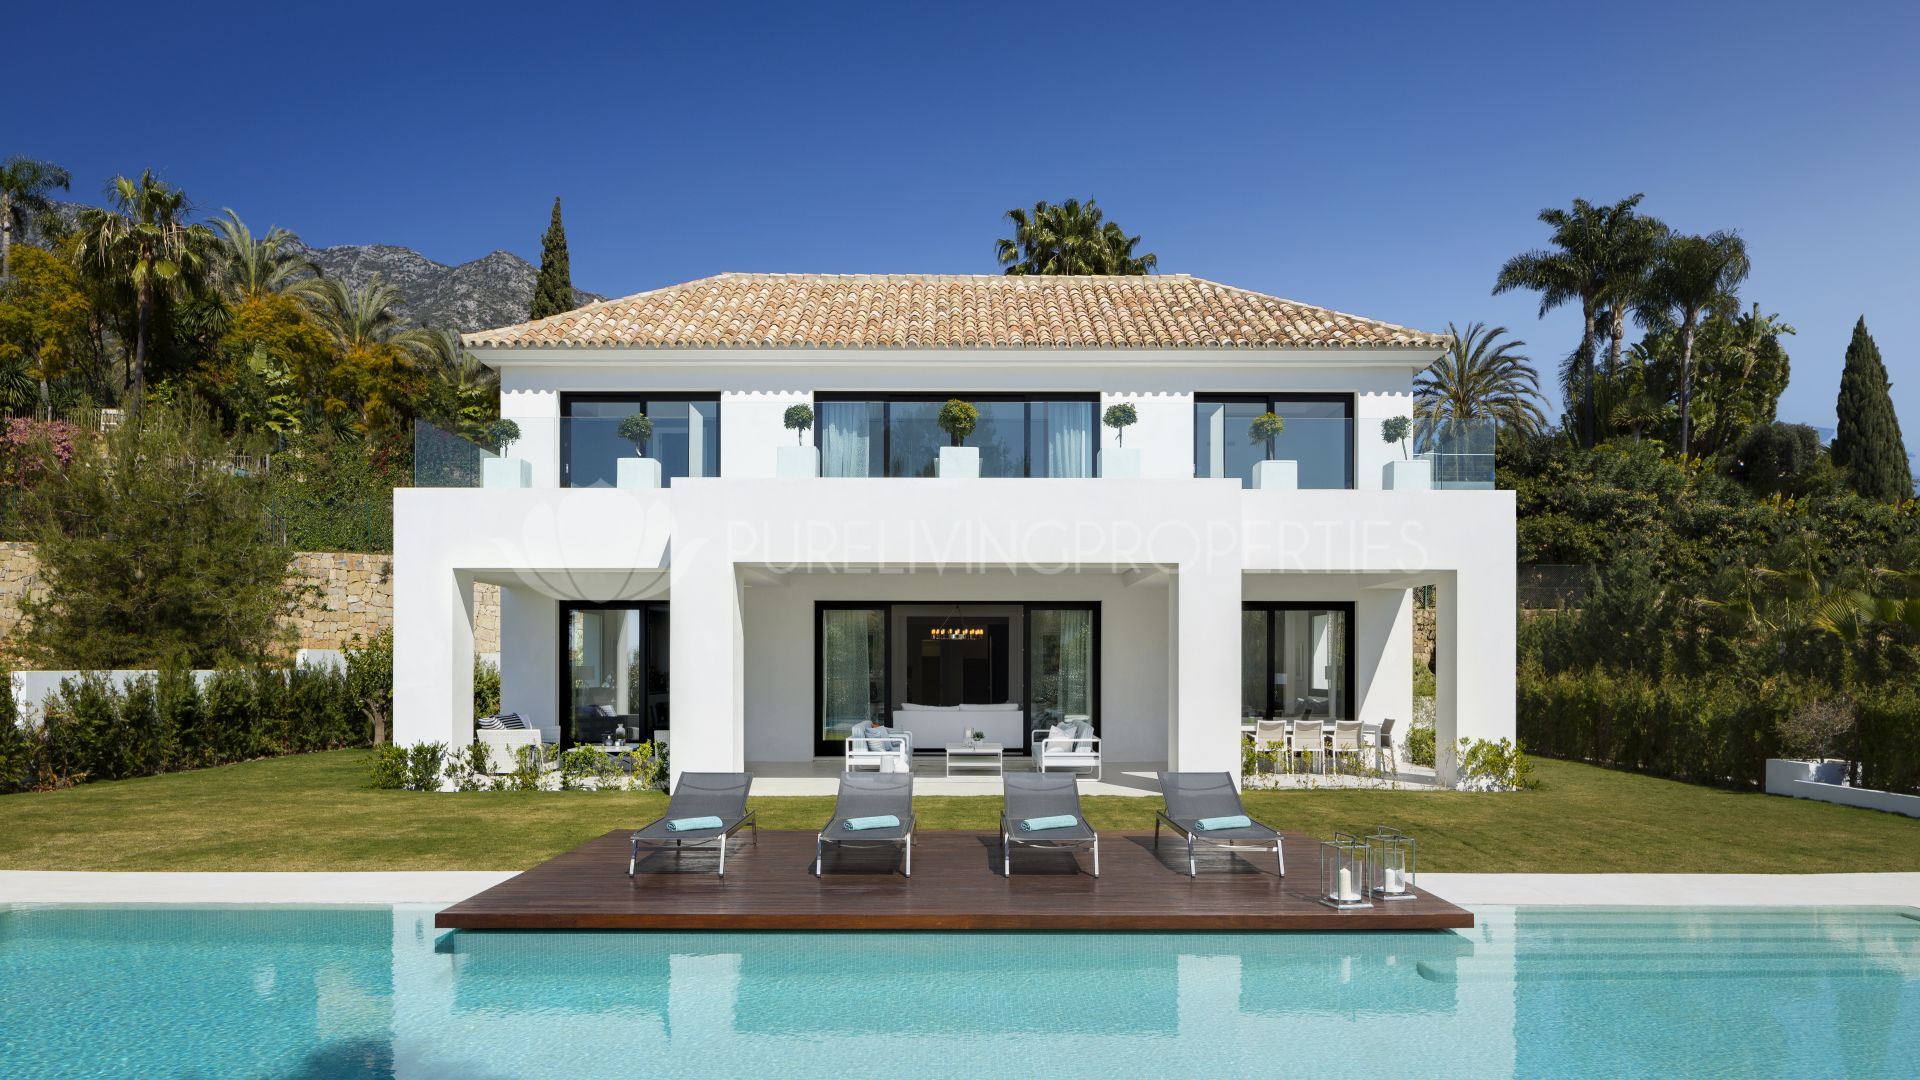 Properties for sale in marbella real estate in puente romano - Ambience home design marbella ...